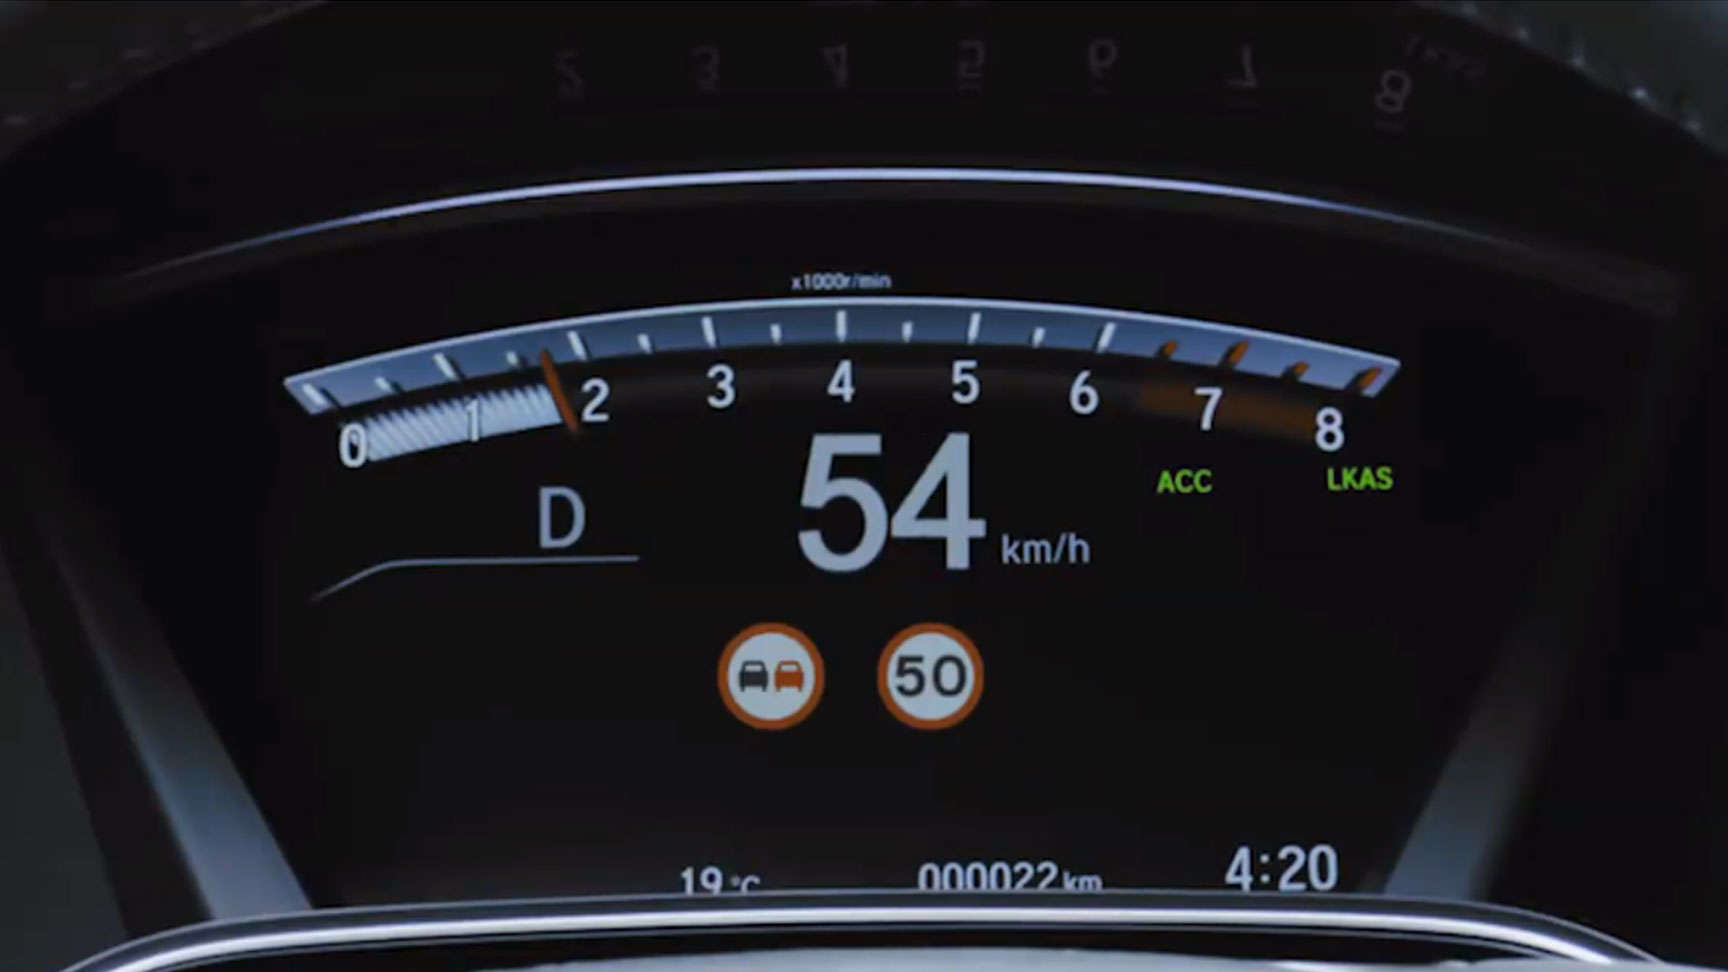 Speedometer showing traffic sign recognition feature